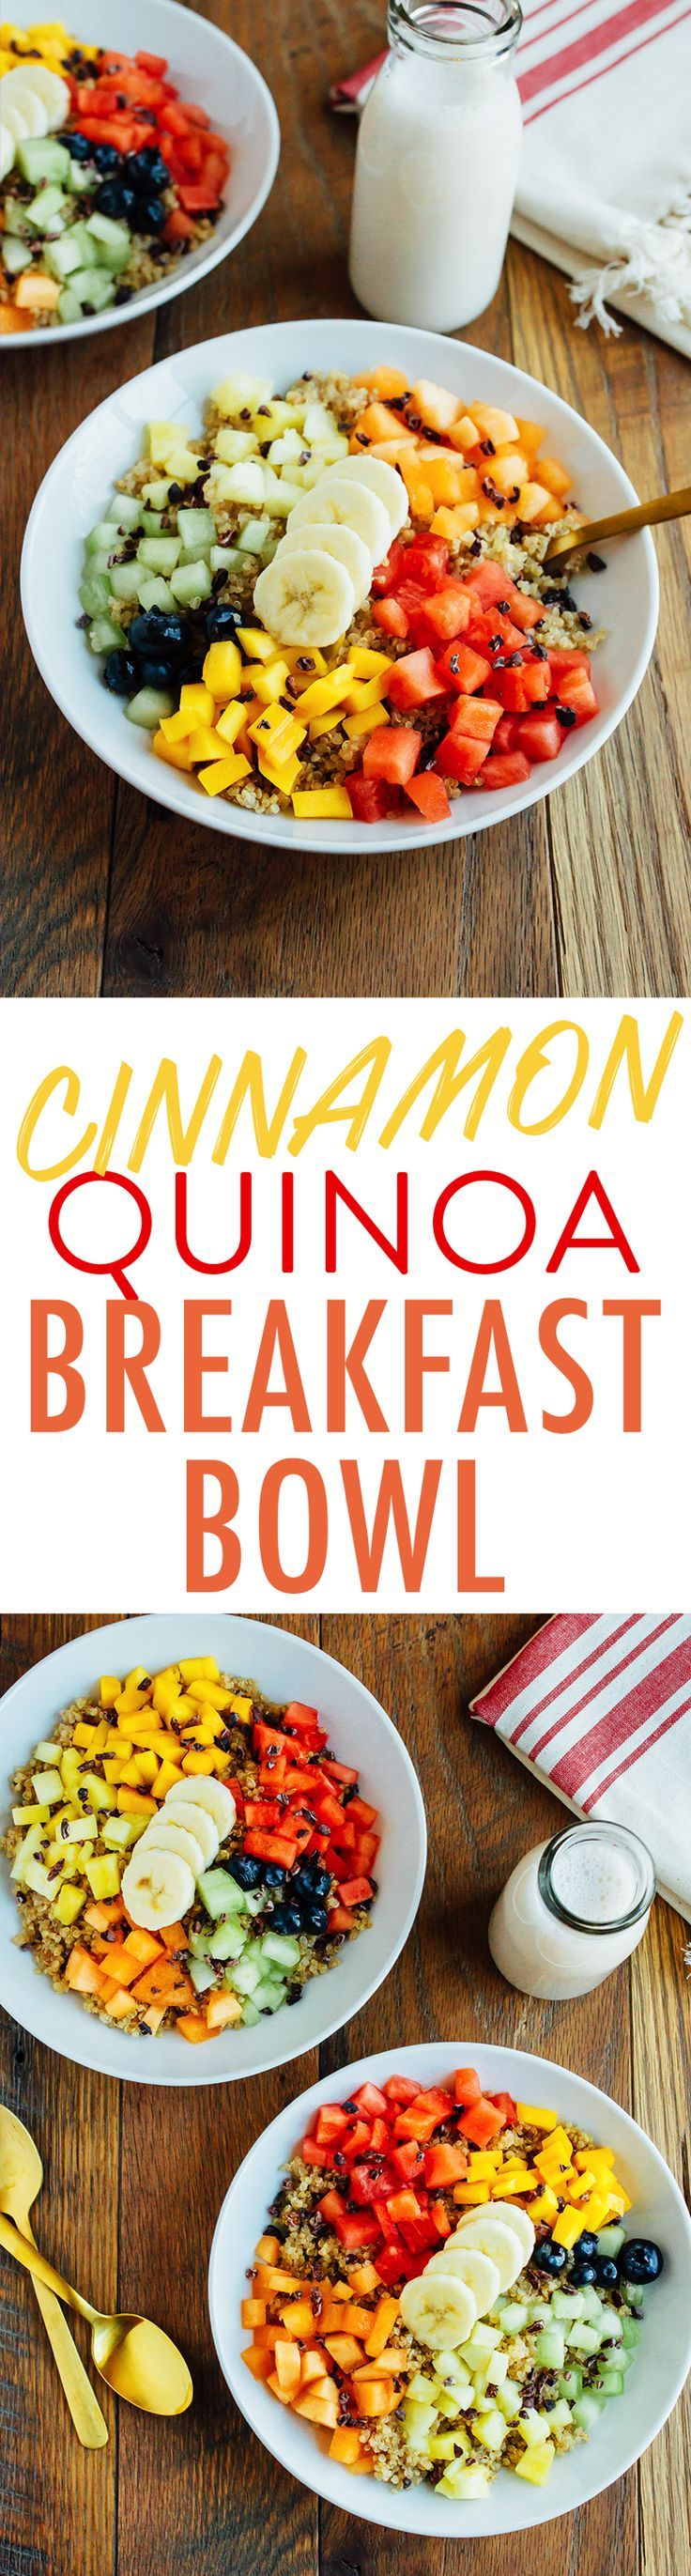 Eat bird food for breakfast with this warm cinnamon quinoa breakfast bowl. Loaded with fresh fruit, cacao nibs and a maple syrup drizzle this bowl is the perfect start to your day. Vegan and gluten-free.